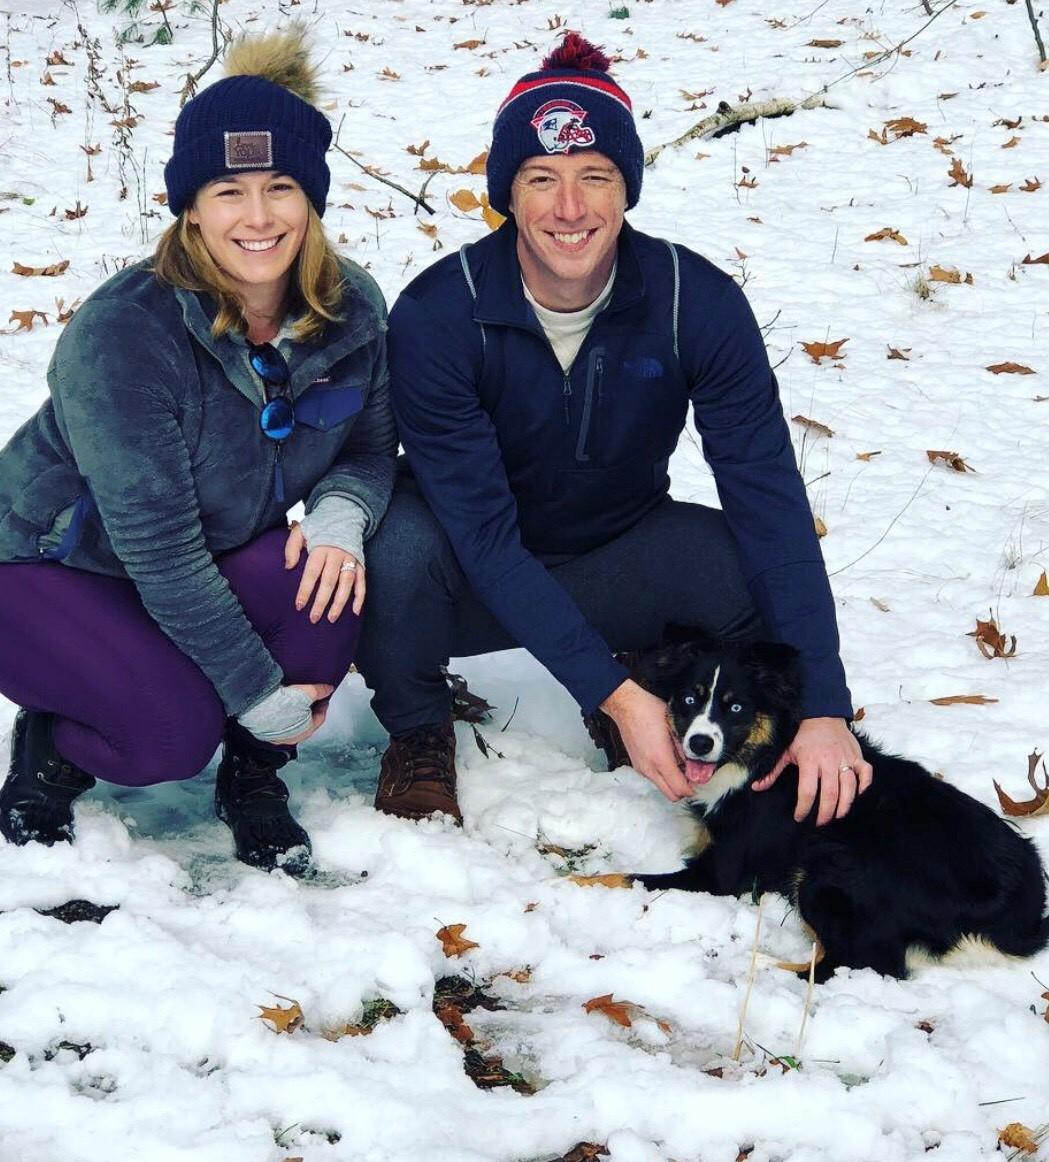 Sam with his wife and dog